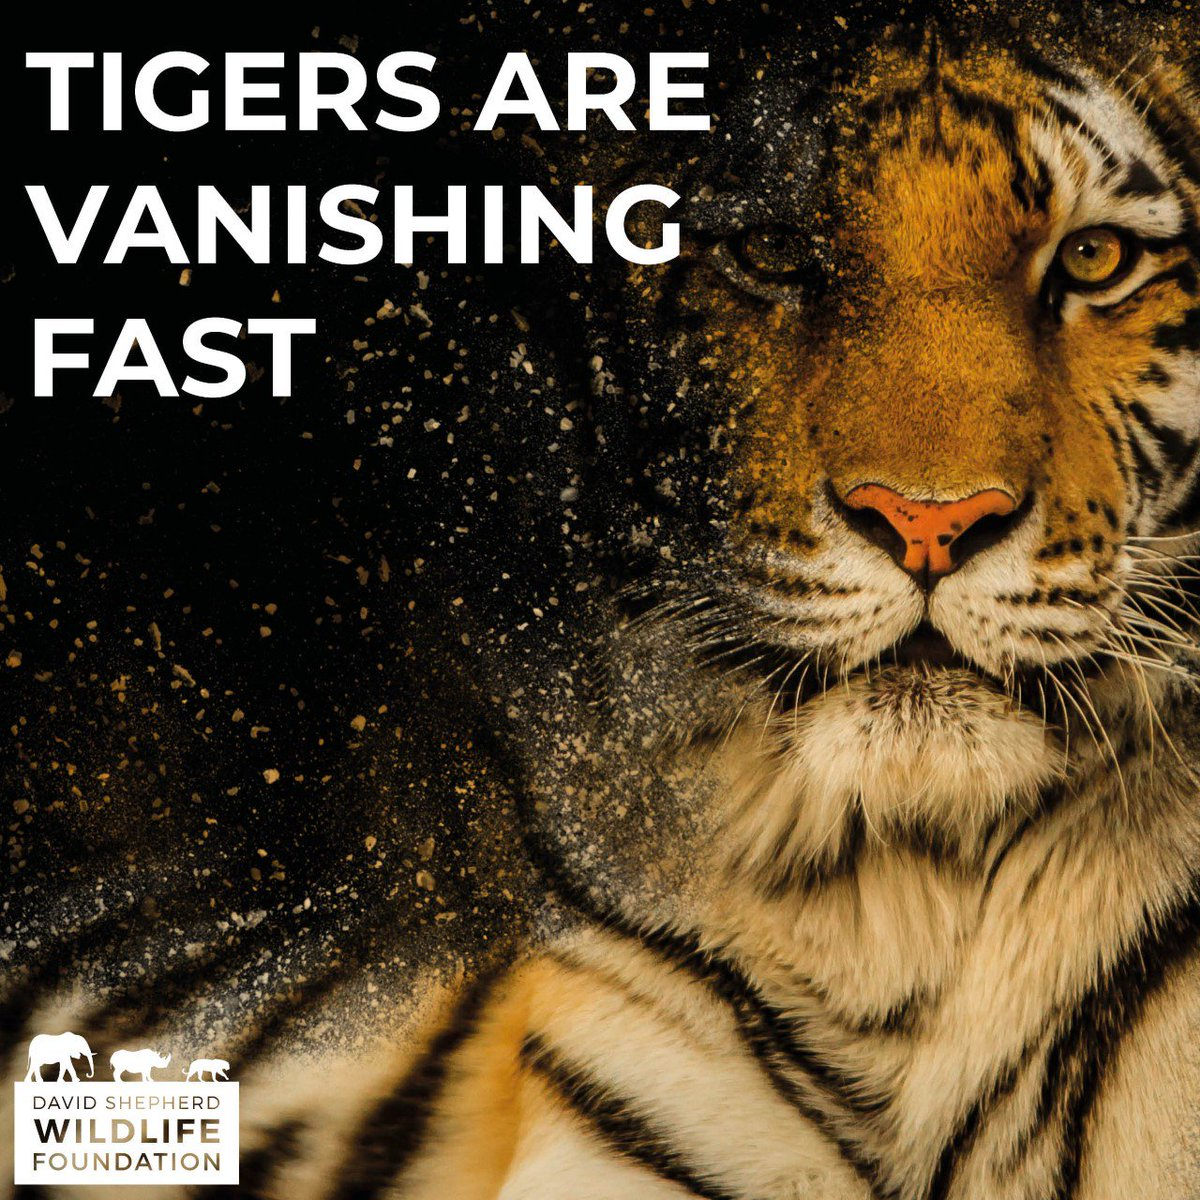 RT @Ethical_Ins: At @Ethical_Ins , we want to help make change! We want people to take out their #insurance through us so we can help charities like @DSWFWildlife with #tigerappeal  We will give up to 25% of our commission back to #charity Request a quot… <br>http://pic.twitter.com/VlK5sxLsBI